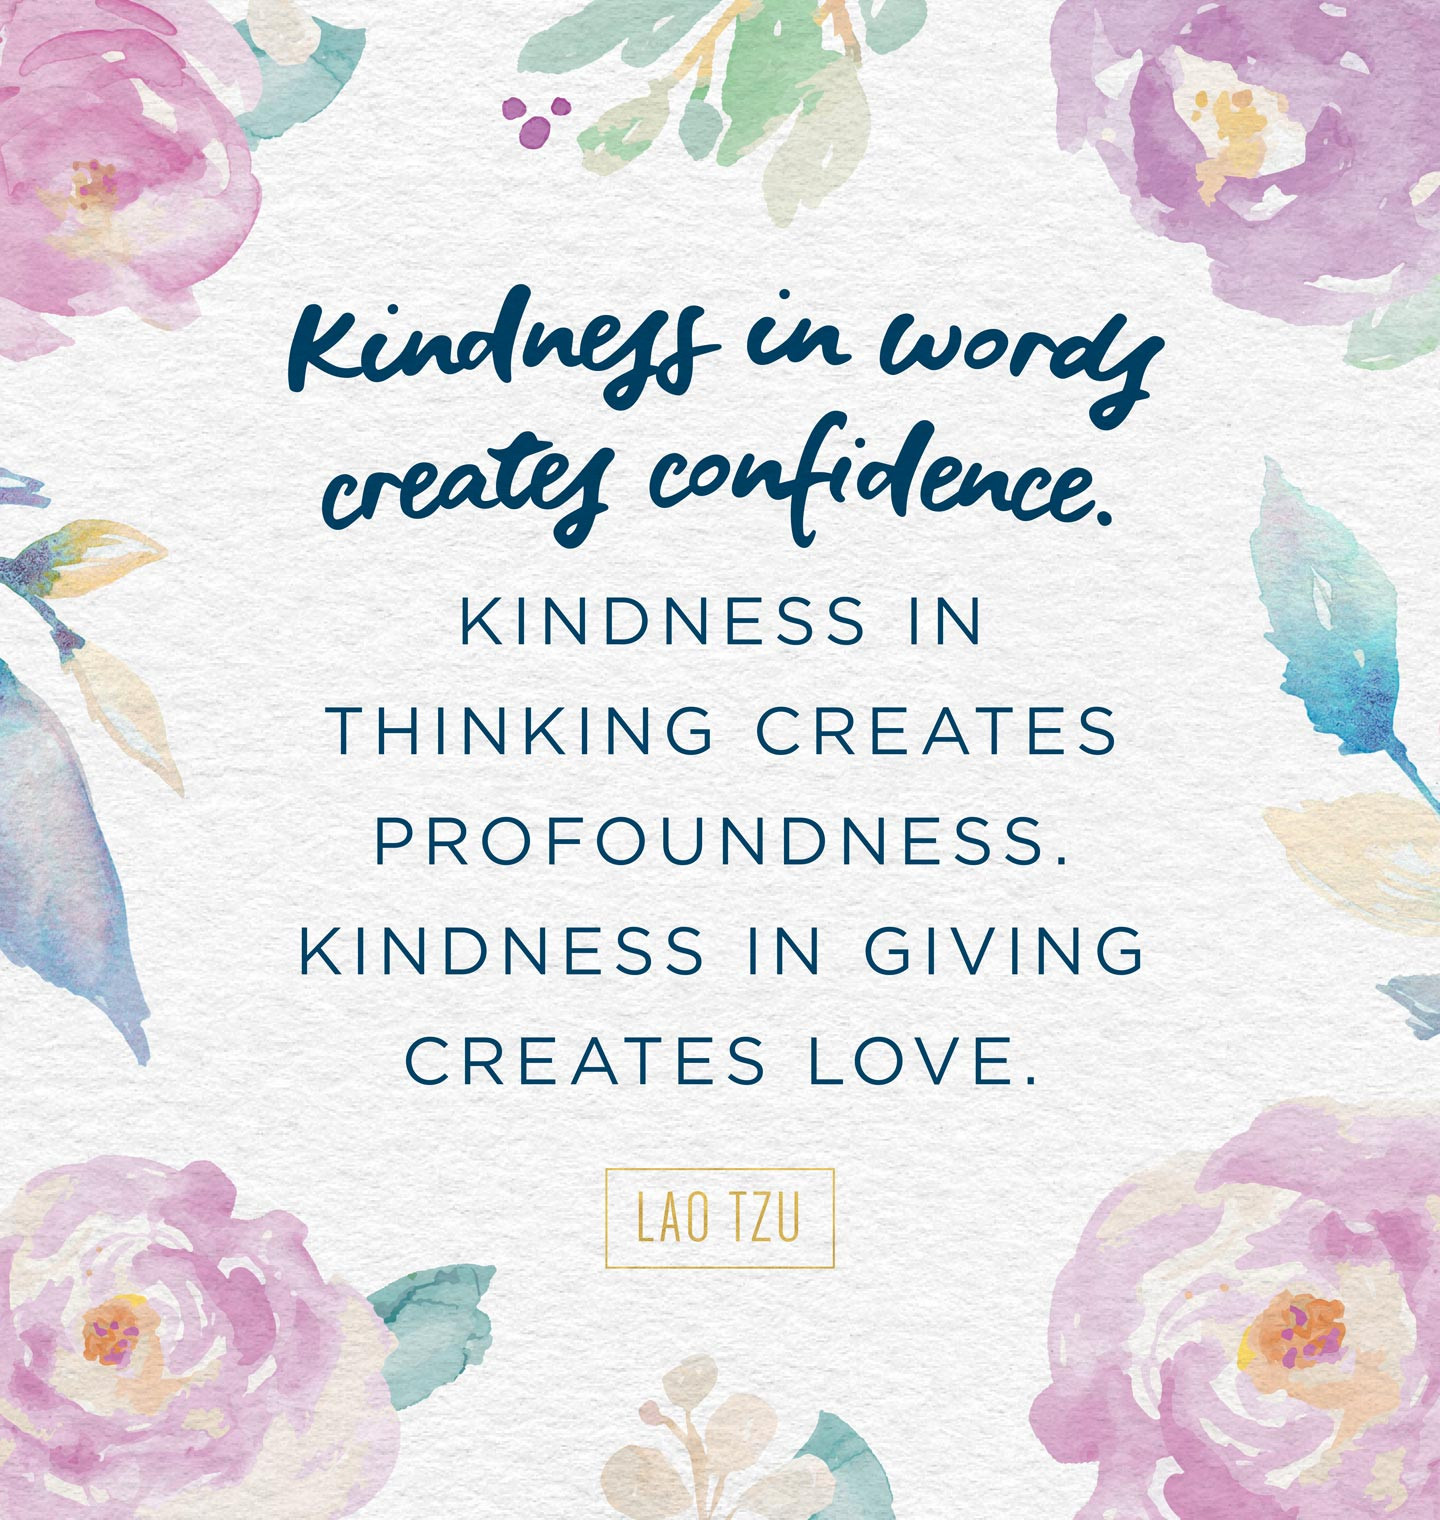 Quotes Kindness  30 Inspiring Kindness Quotes That Will Enlighten You FTD